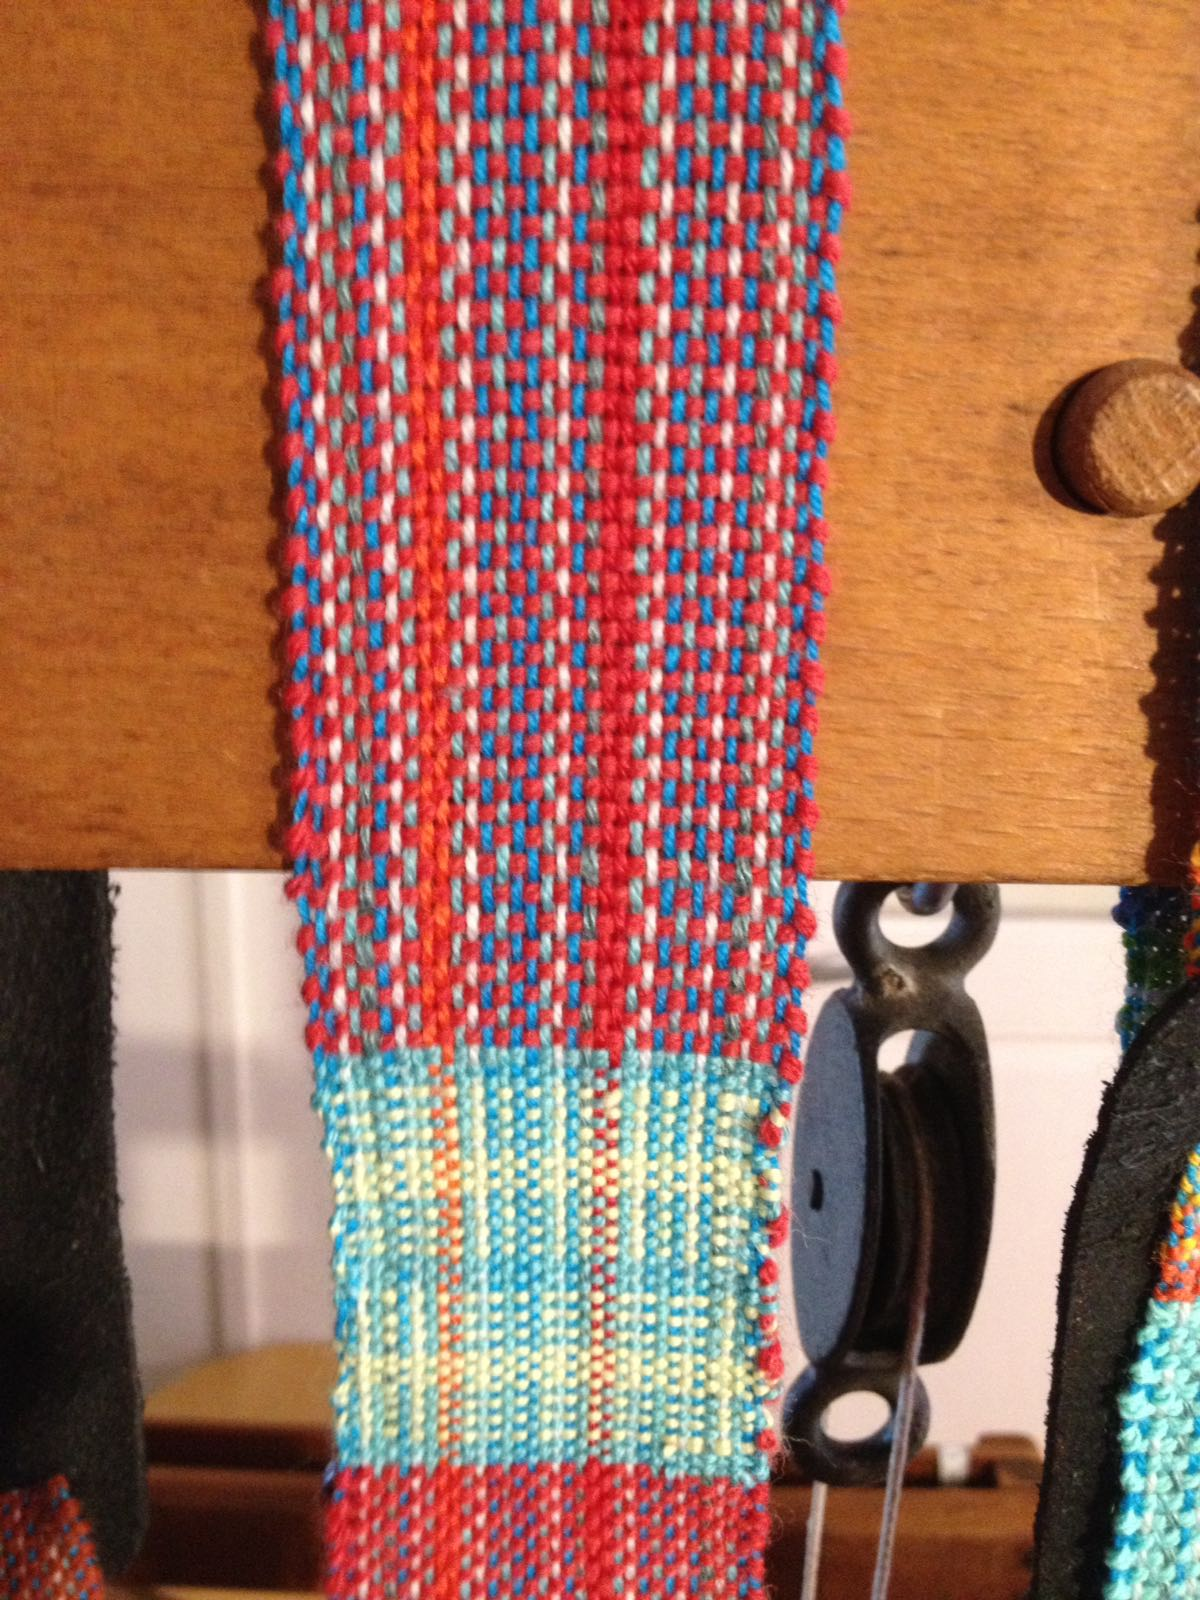 Detail of red strap